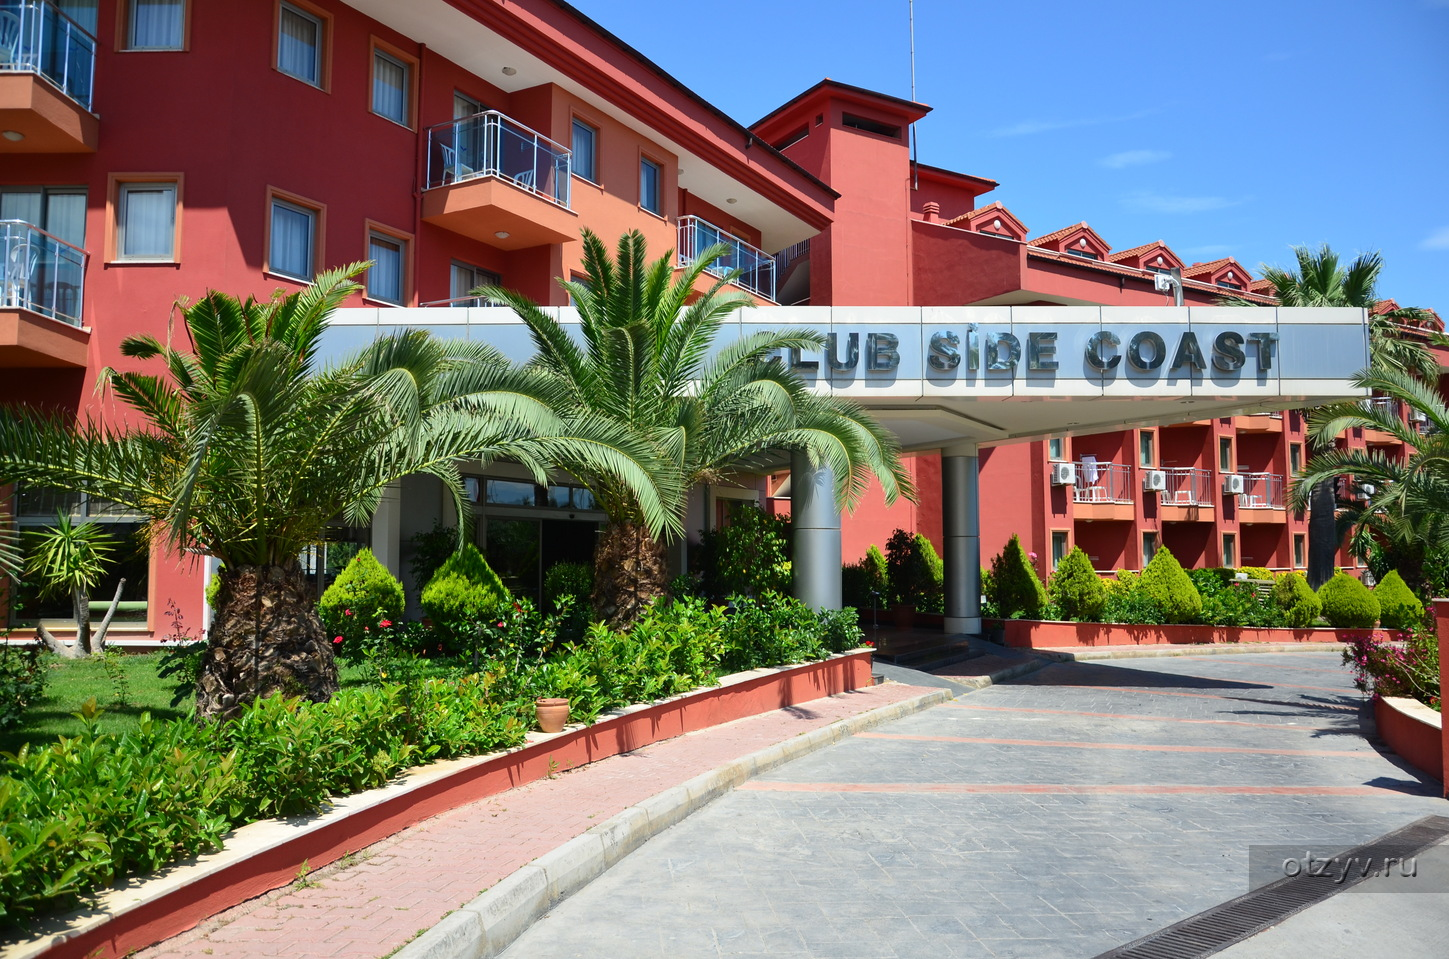 Club Side Coast Hotel 5 (Turkey, Side): photos, room description, service, tips and tourist reviews 42